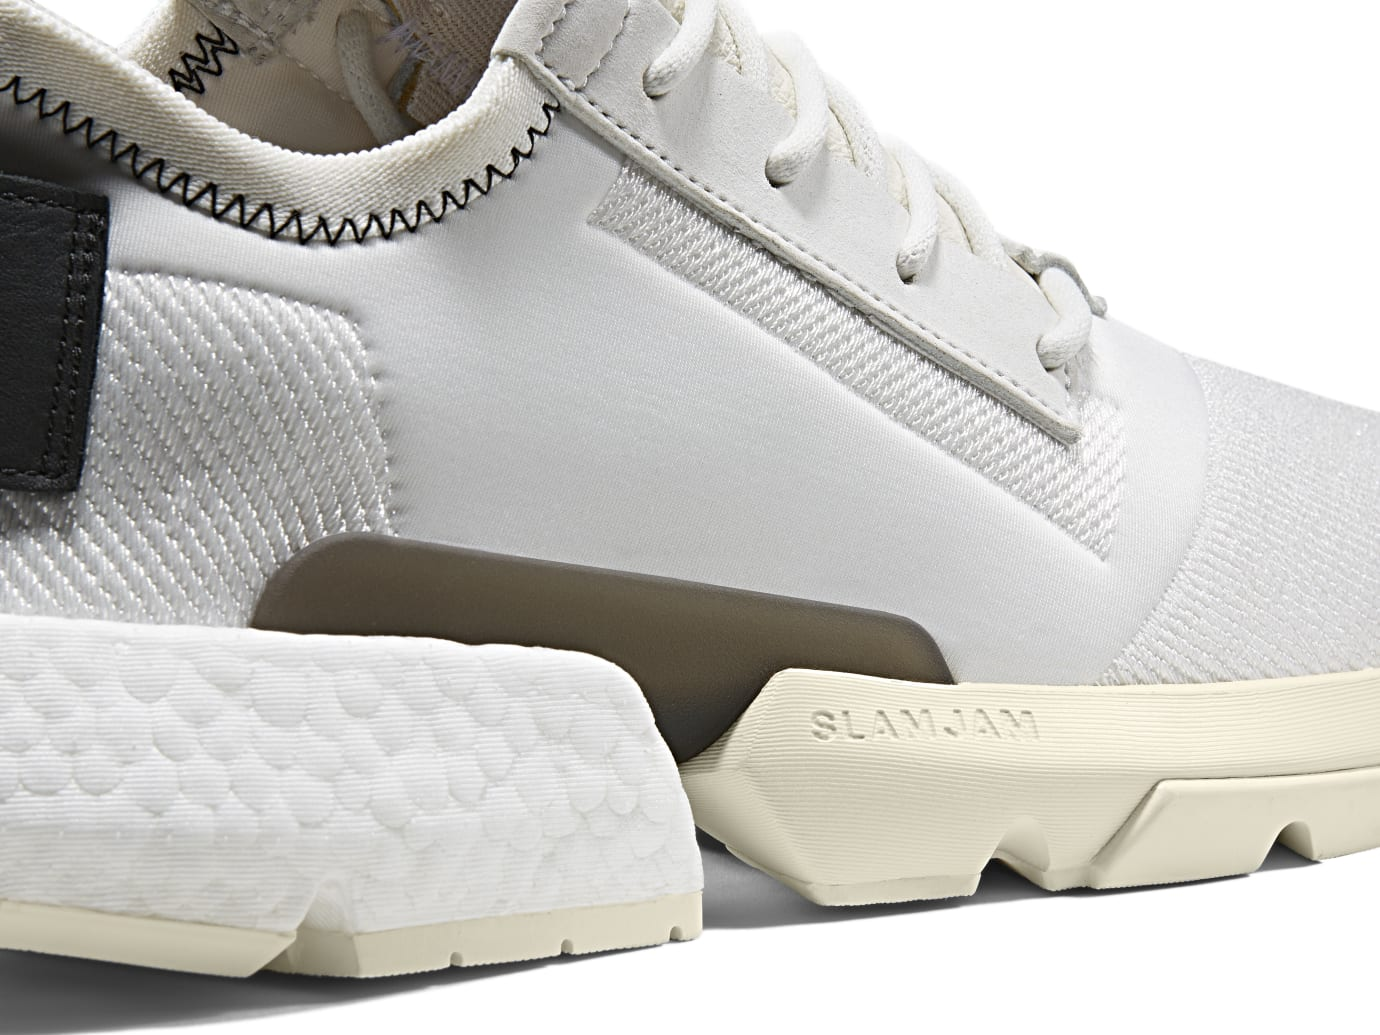 Slam Jam x Adidas P.O.D. System (Lateral Detail)